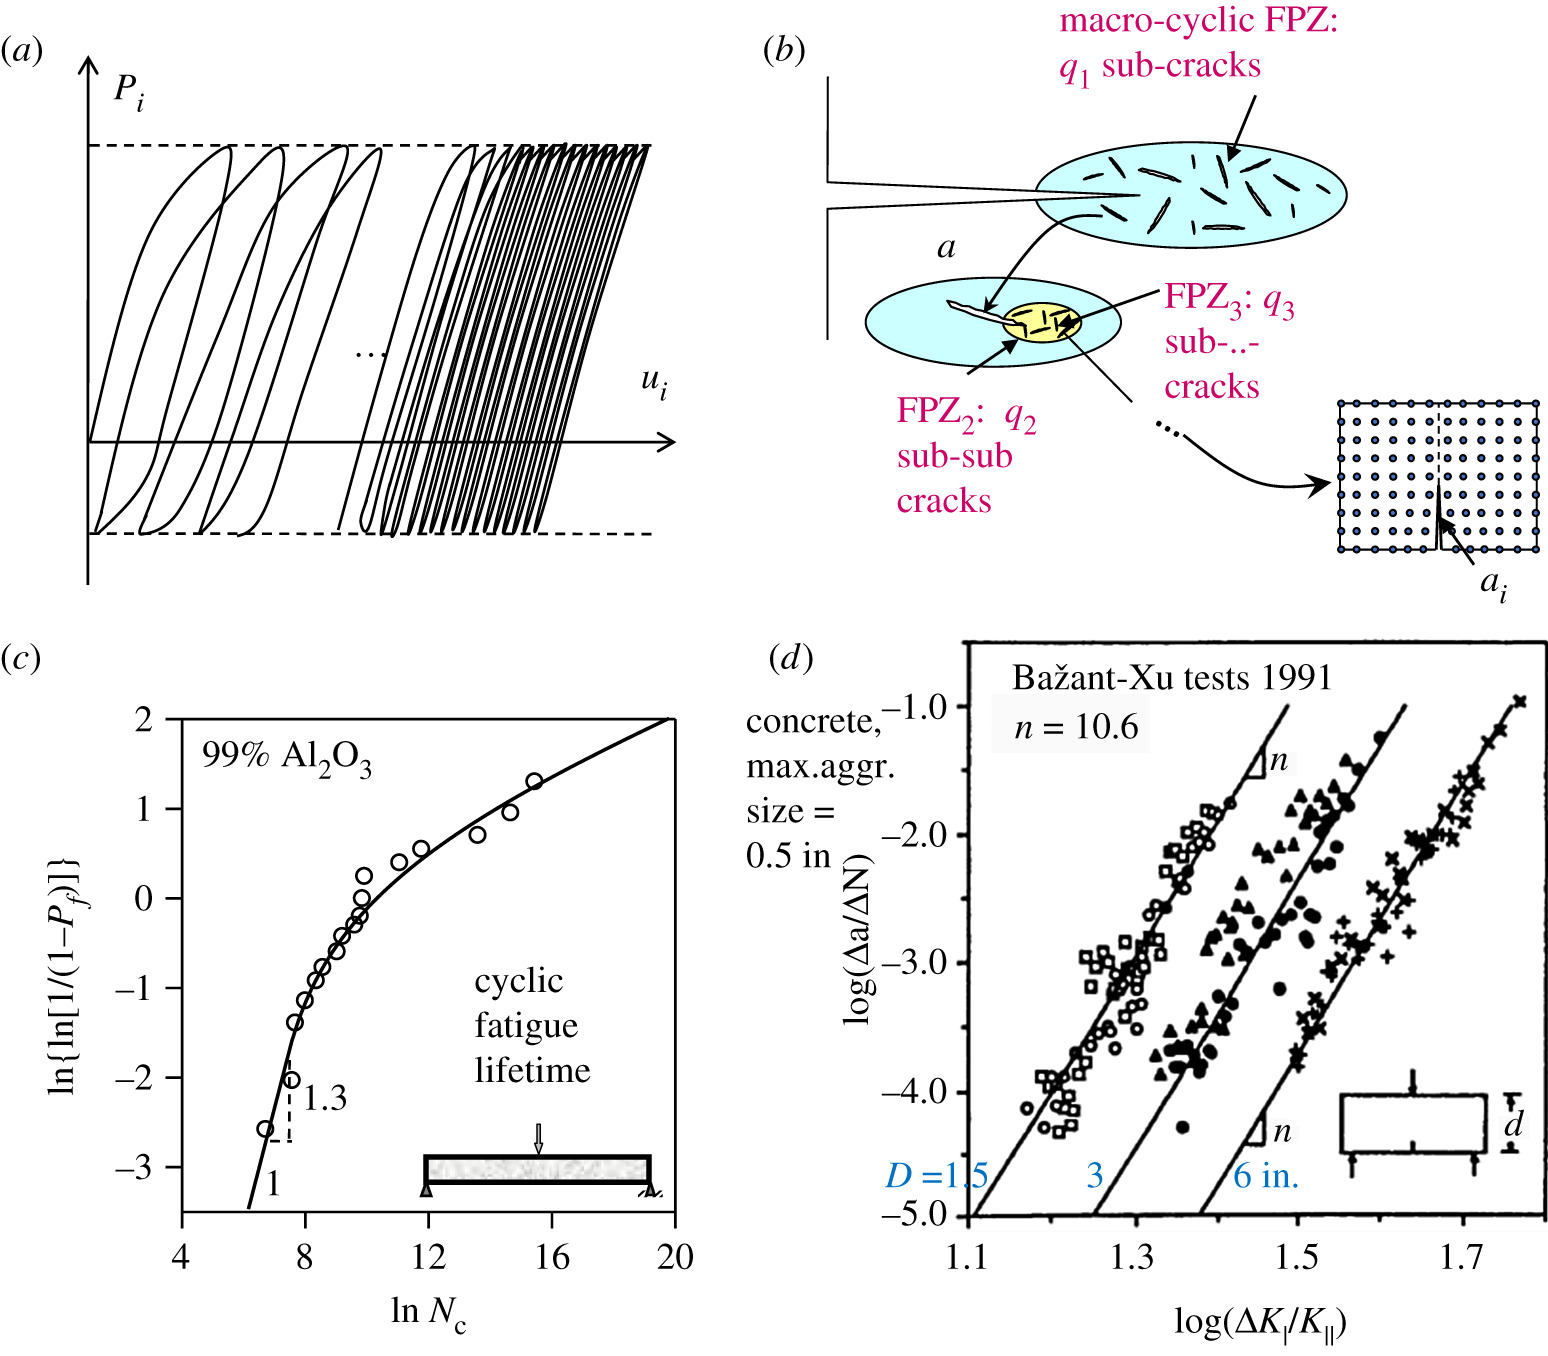 Design of quasibrittle materials and structures to optimize strength